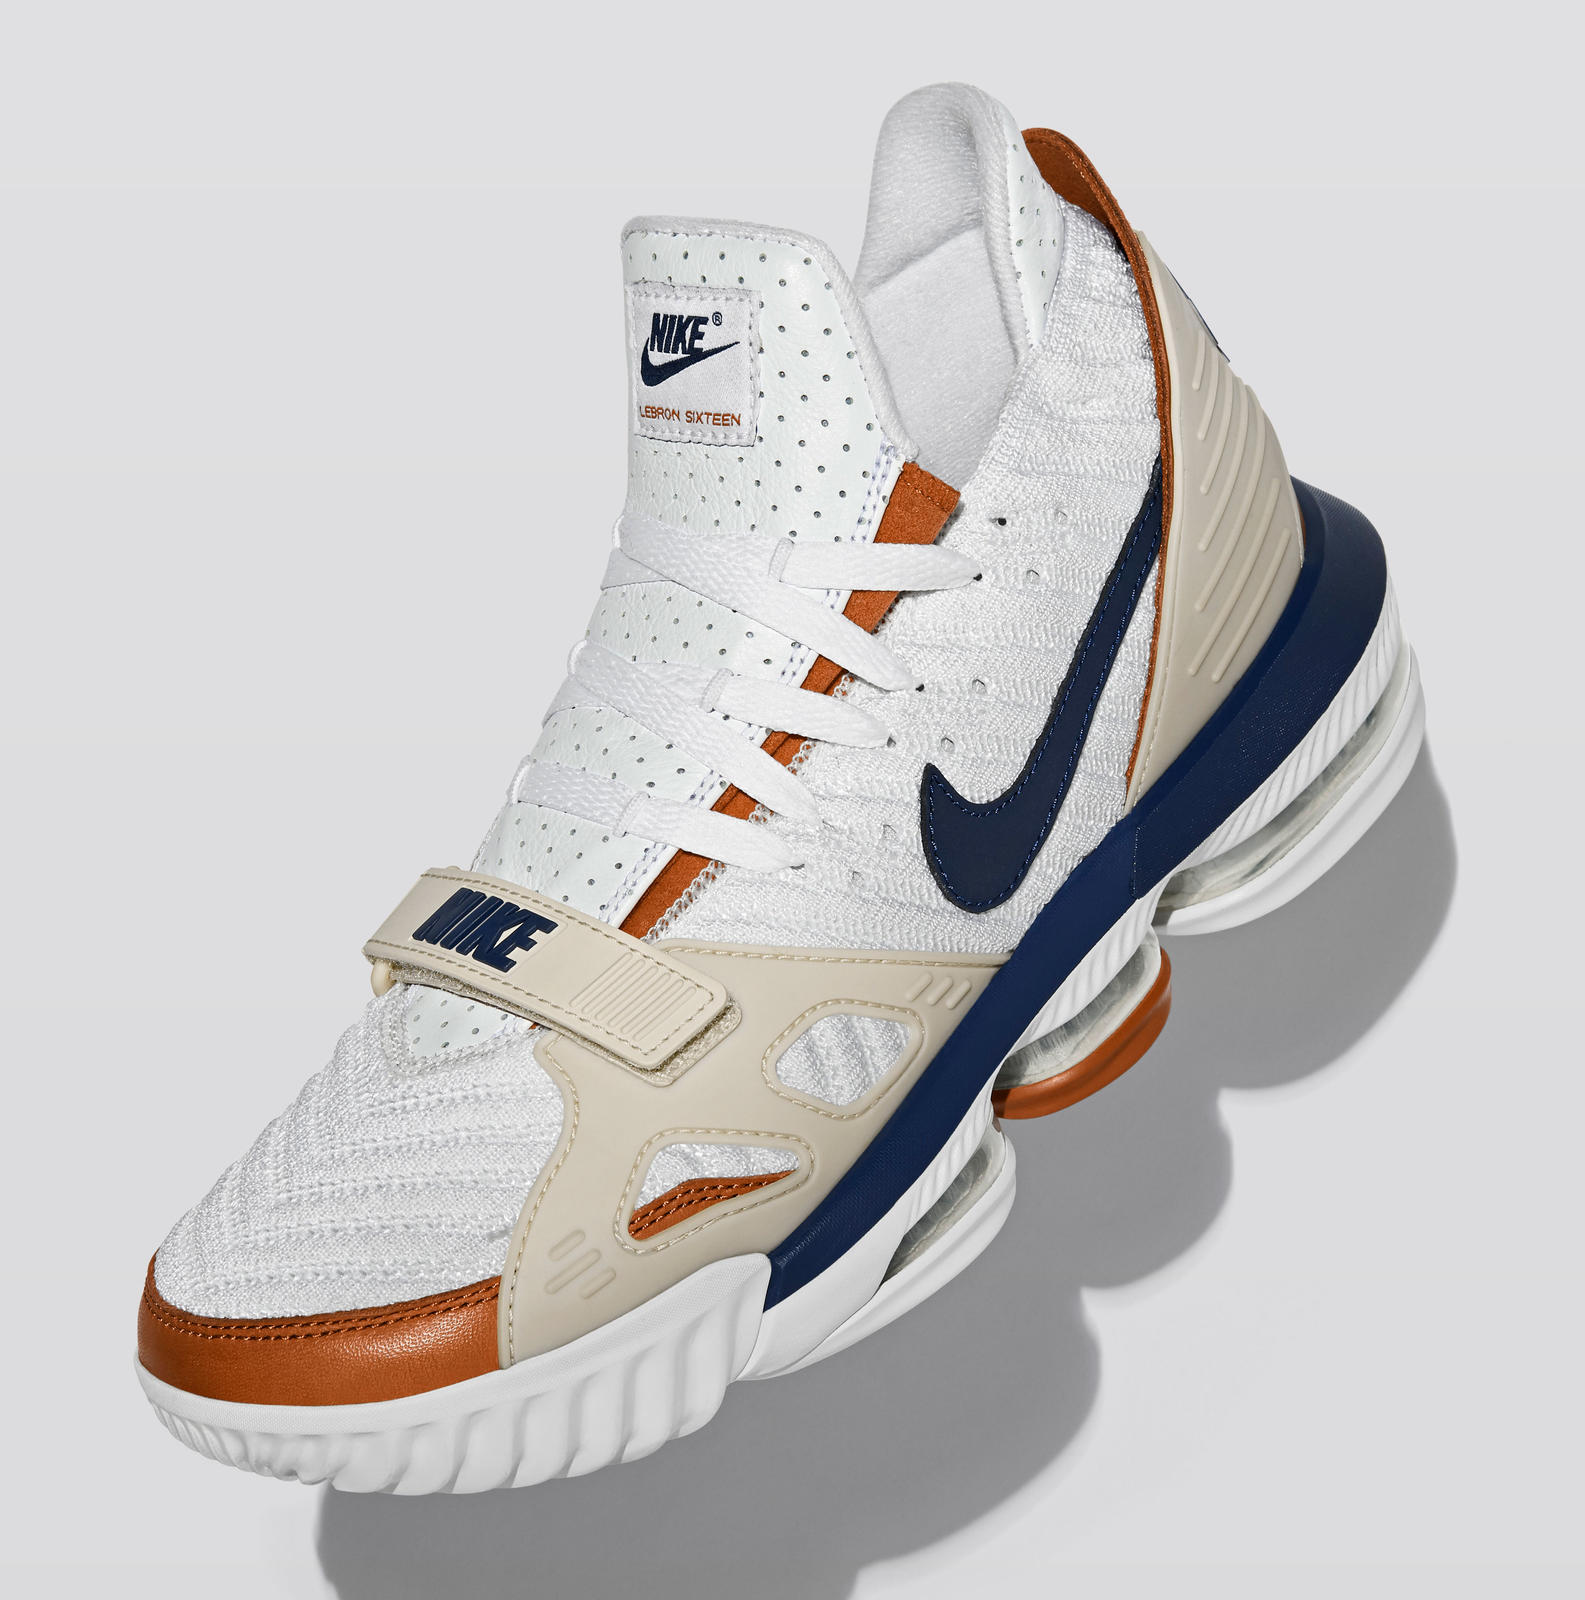 37266e0fe336 LeBron Watch 2018-19 - Nike News